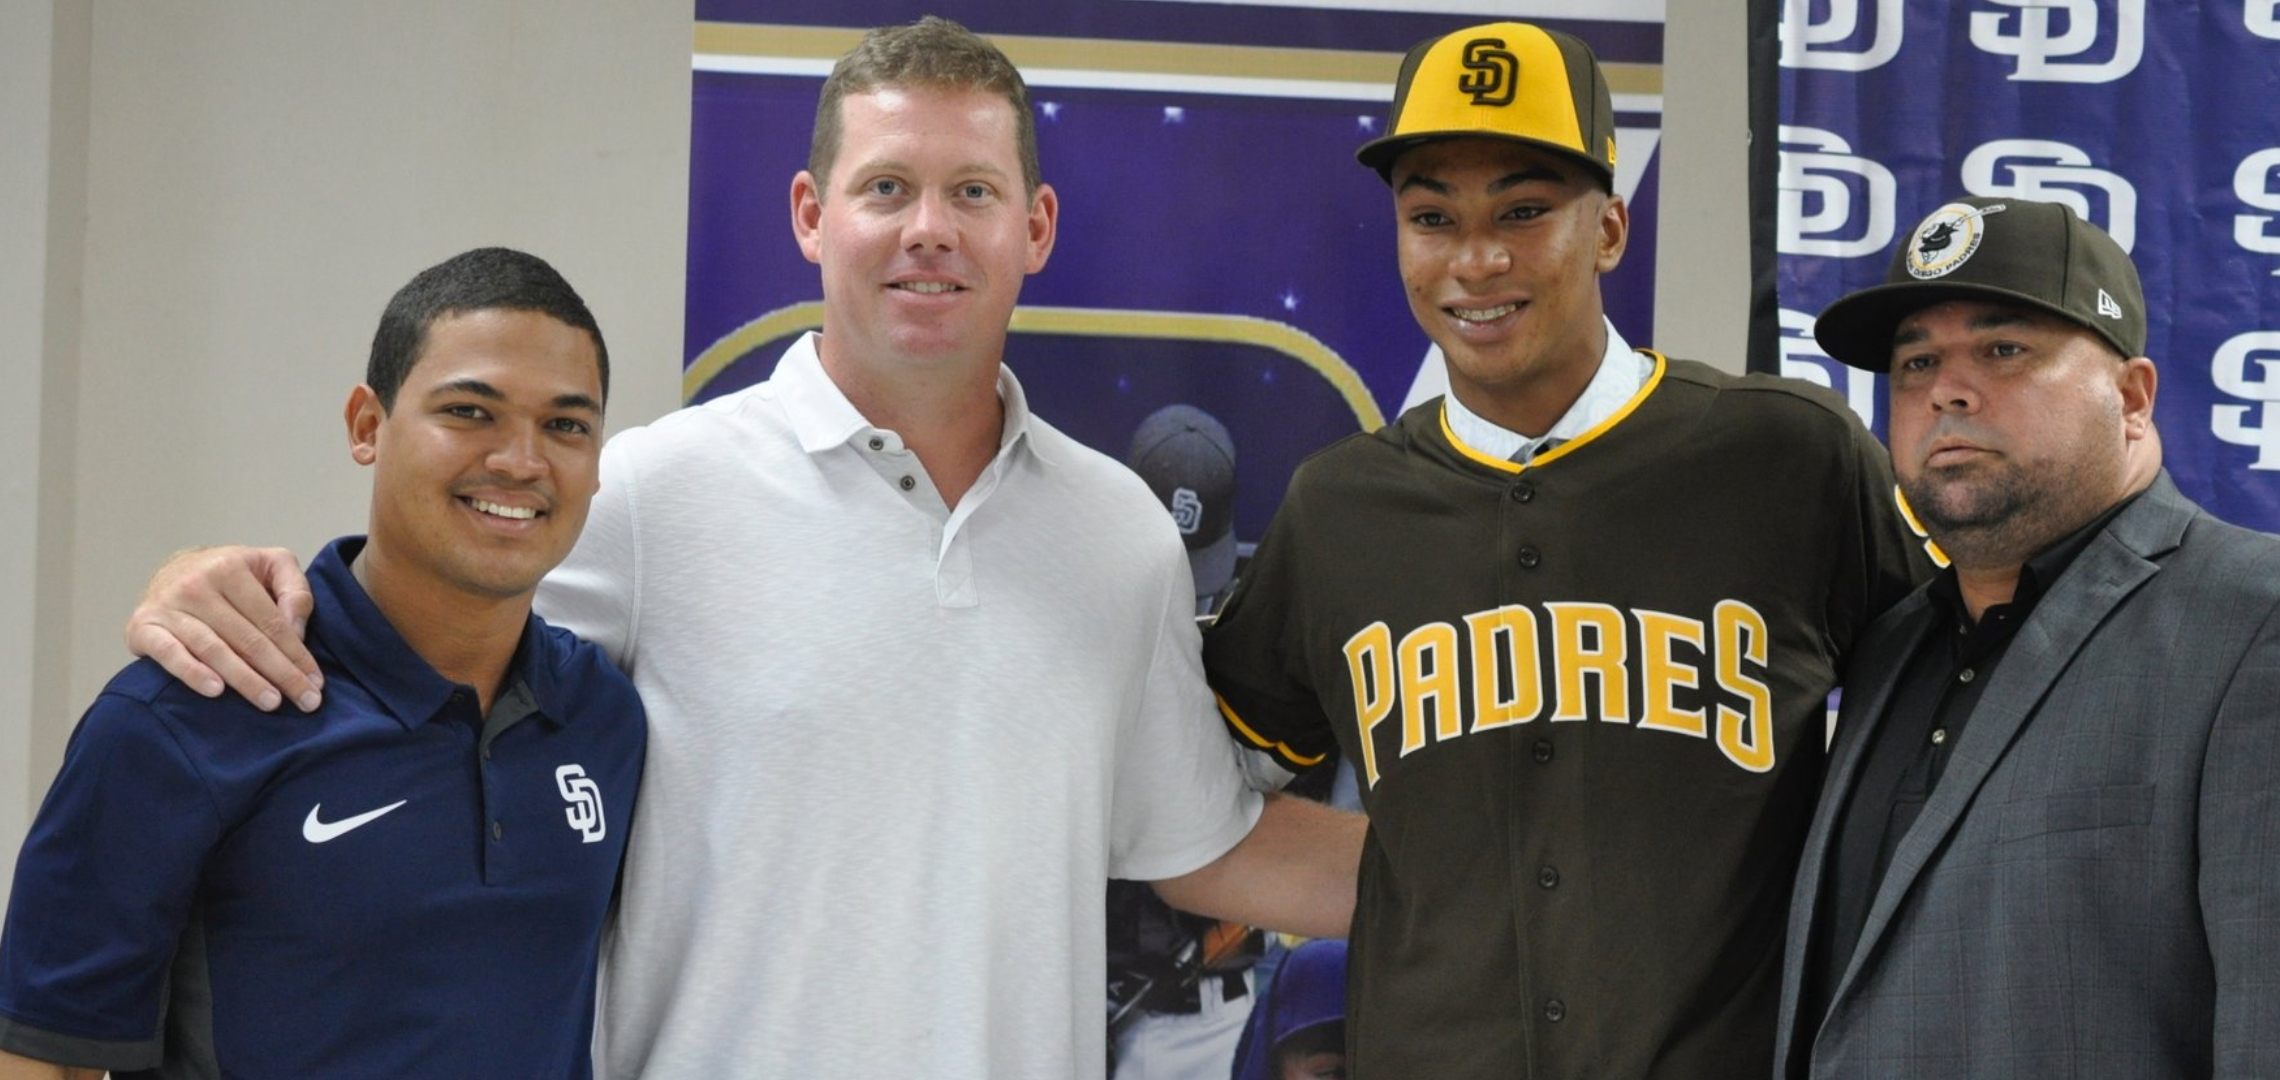 finest selection 29180 e262e Padres sign four Top 30 Int'l prospects | East Village Times